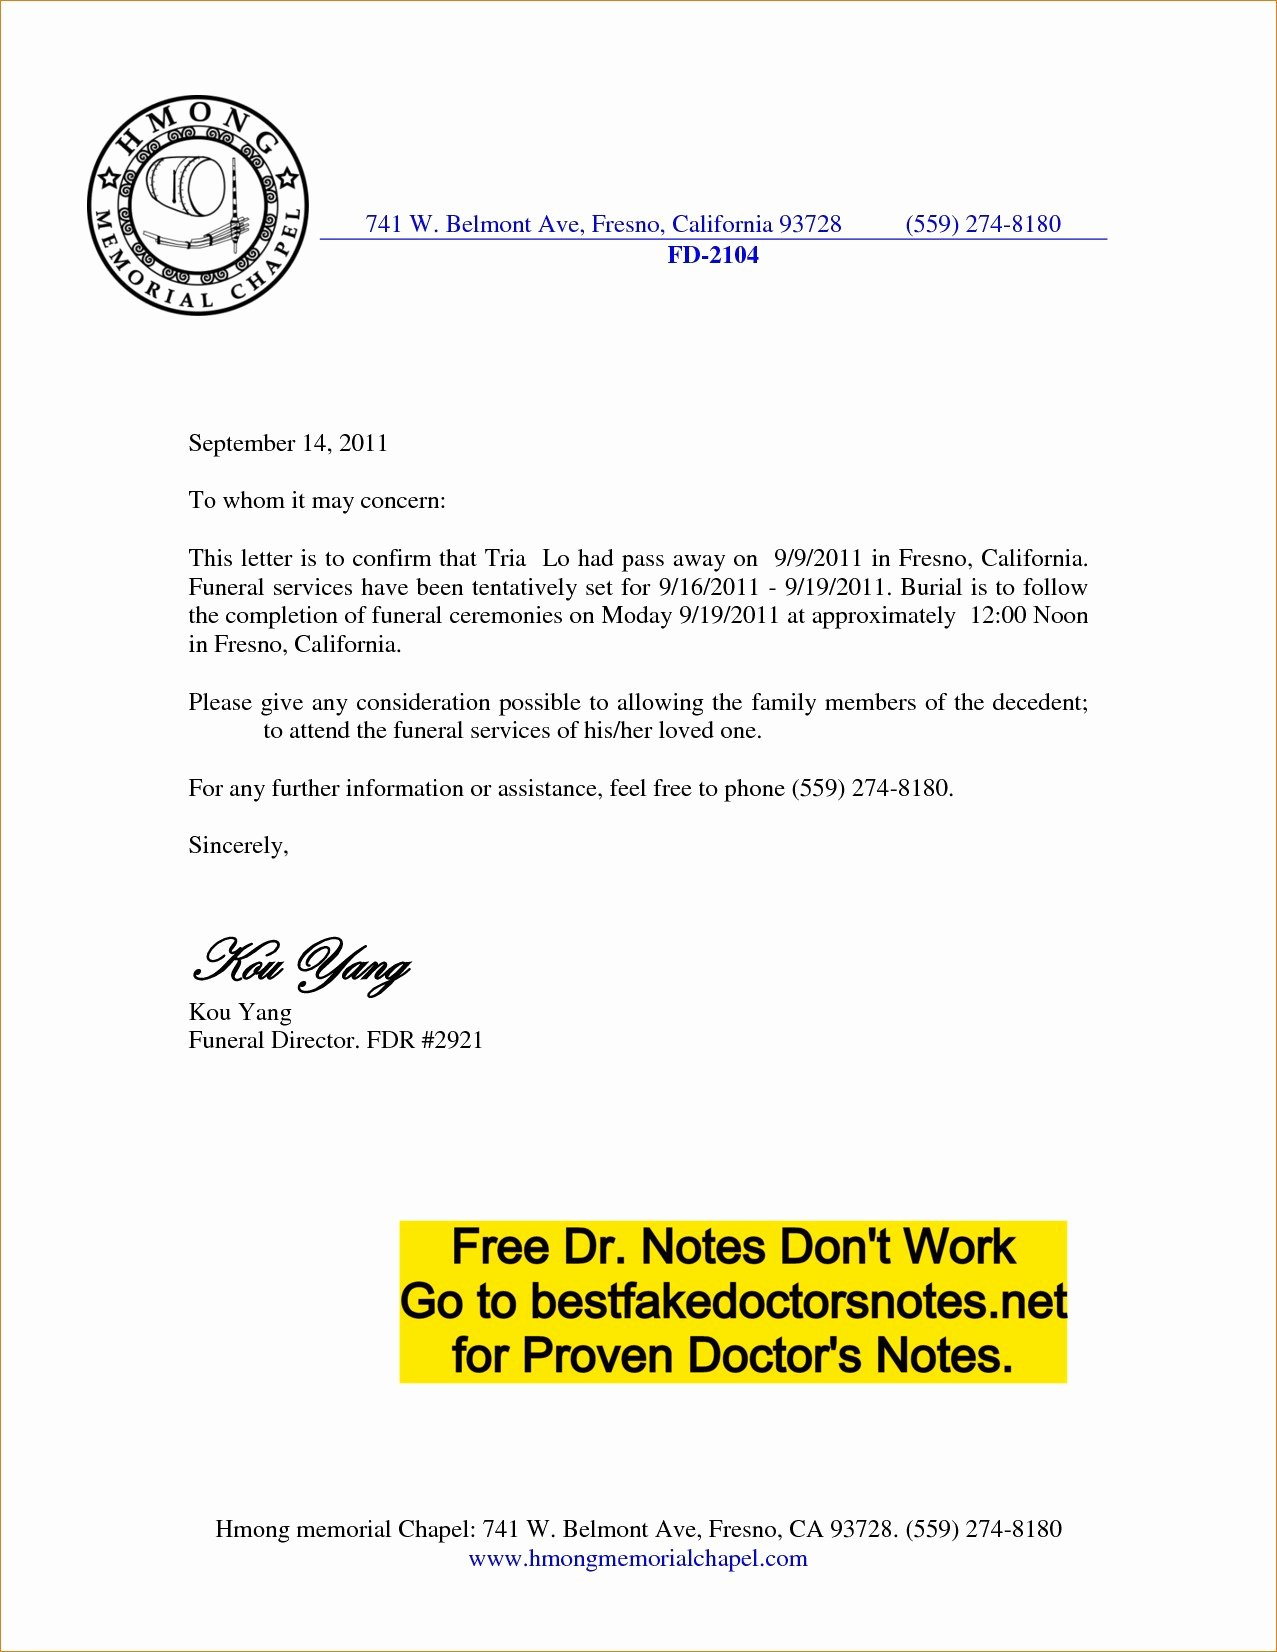 Printable Fake Doctors Notes Awesome 4 Easy Ways to Use A Printable Fake Doctors Note